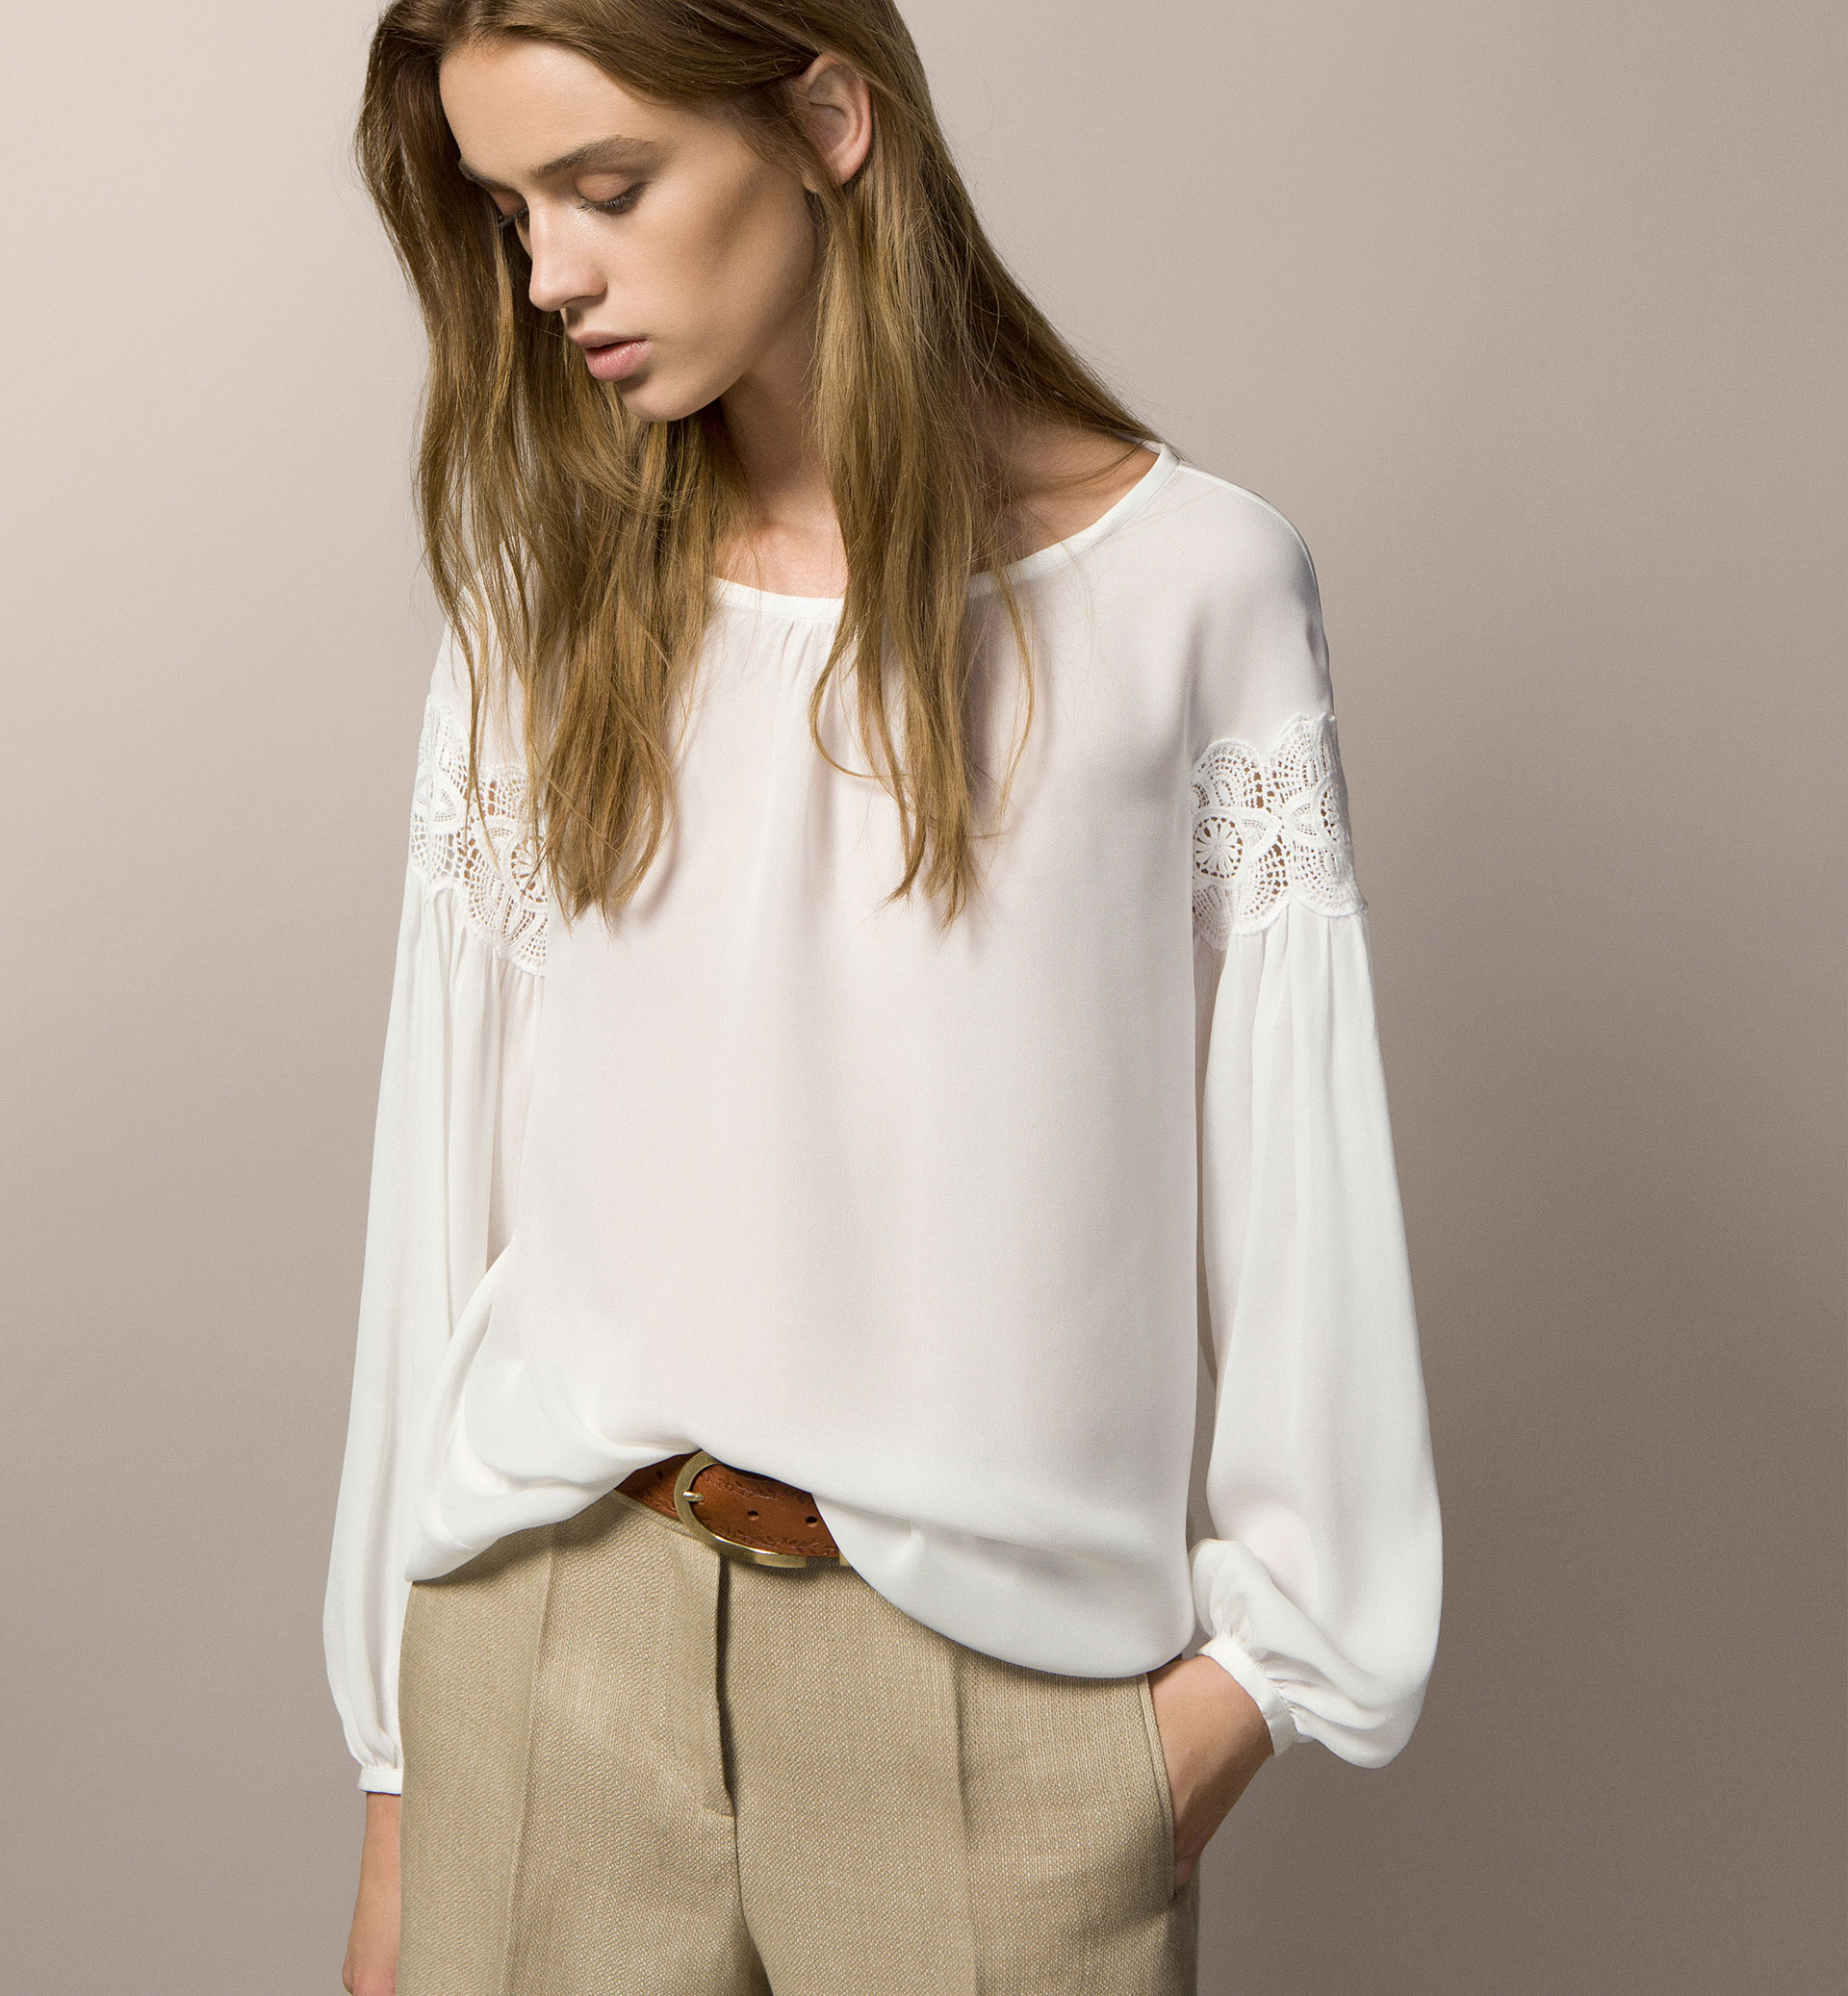 TOP WITH GUIPURE LACE DETAIL